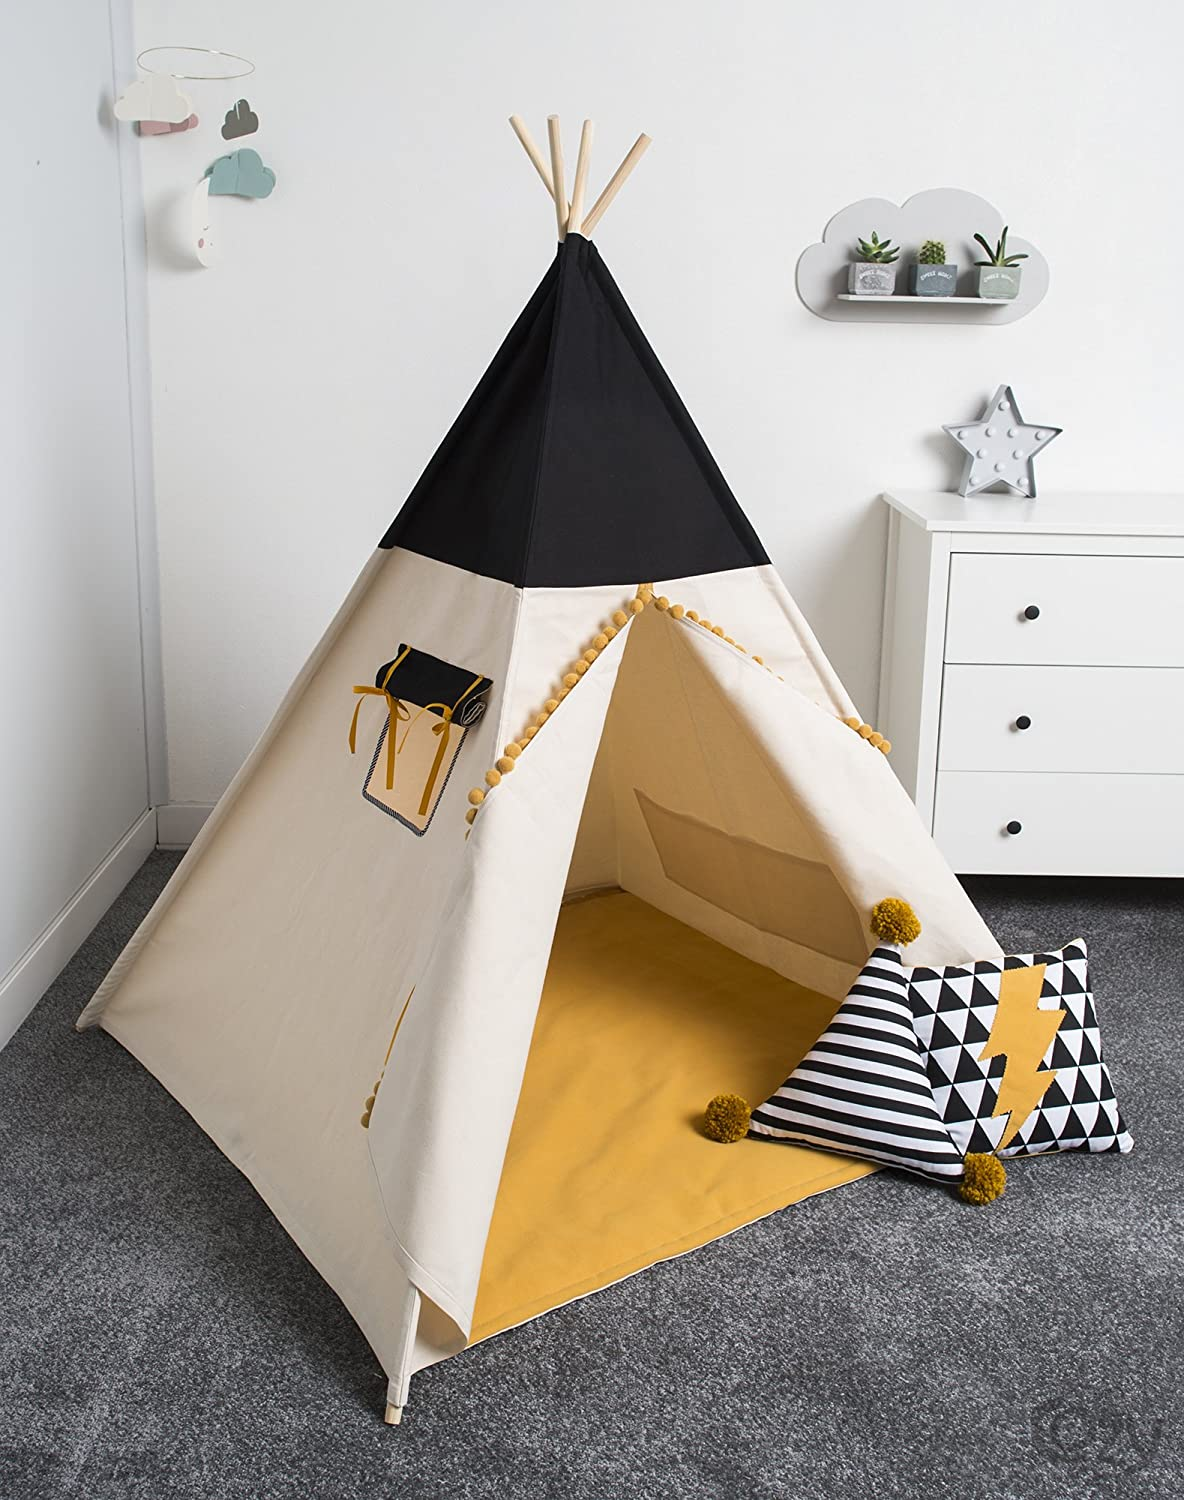 handmade spielzelt kinderzelt indianisches tipi zelt handmade spielzelt tipi kinderzelt. Black Bedroom Furniture Sets. Home Design Ideas